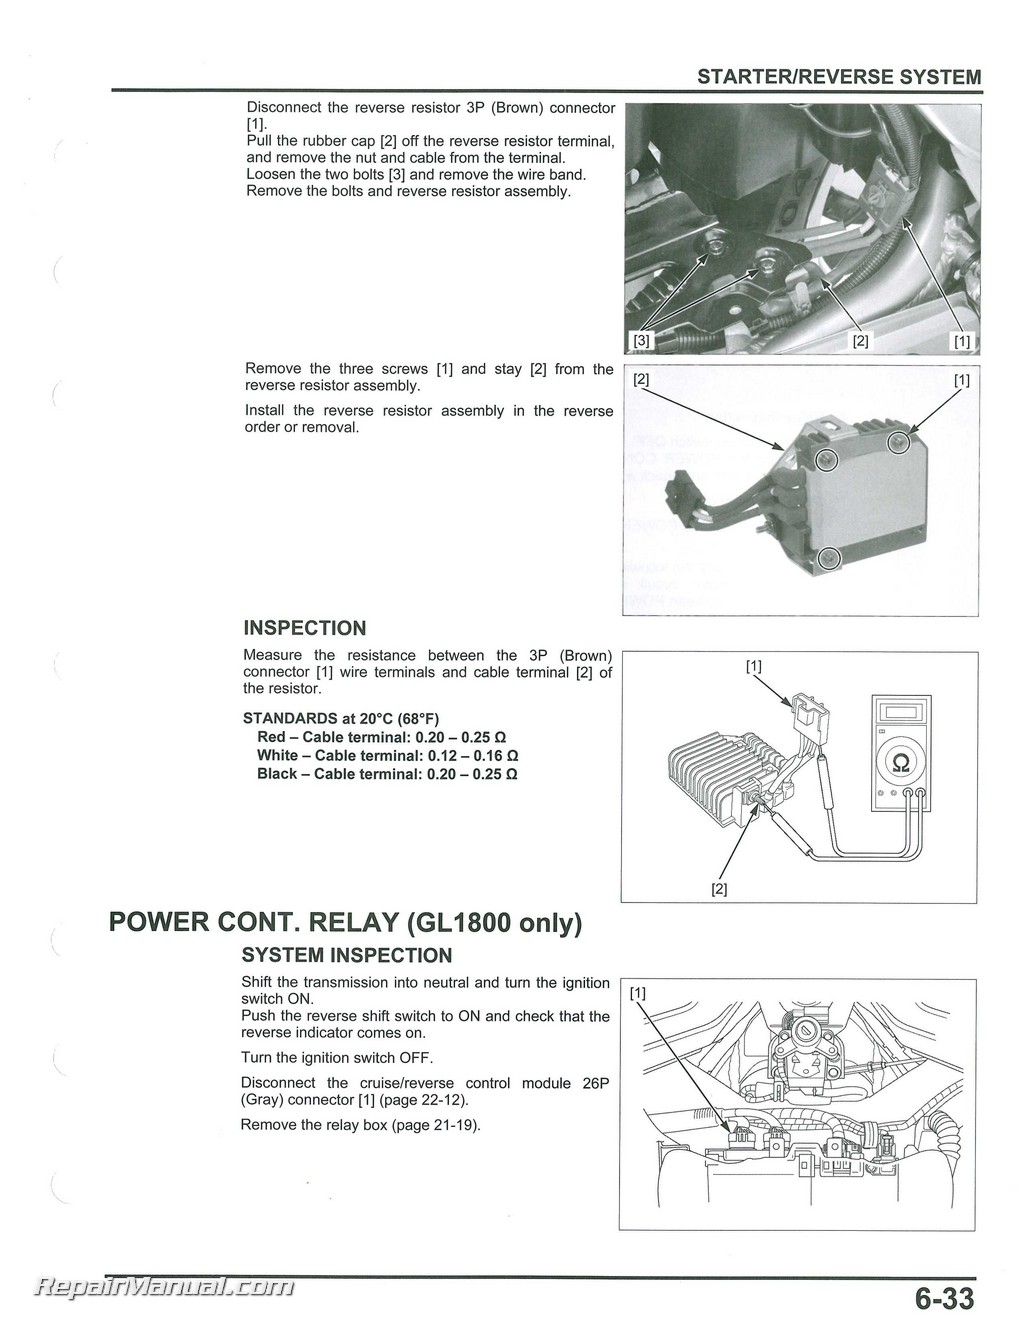 Honda Goldwing Wiring Diagram For 2012 Manual Of 2017 Gl1800a B Motorcycle Service Electrical Rh Repairmanual Com